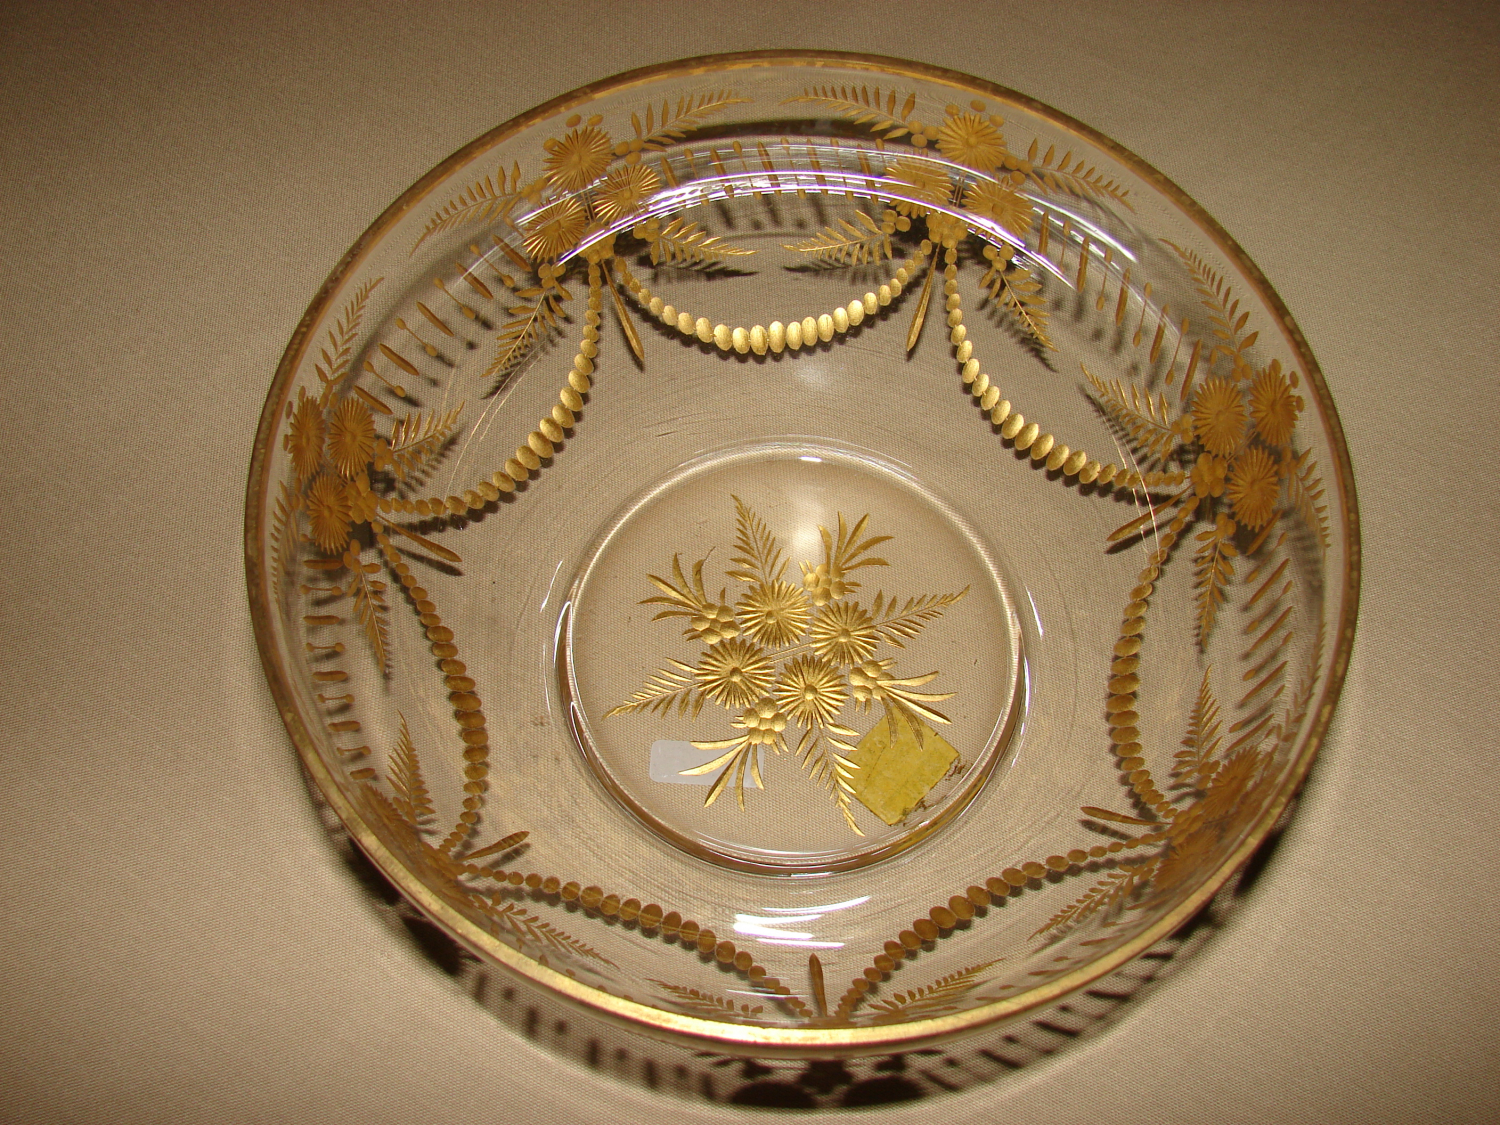 Art Nouveau bowl from 1900